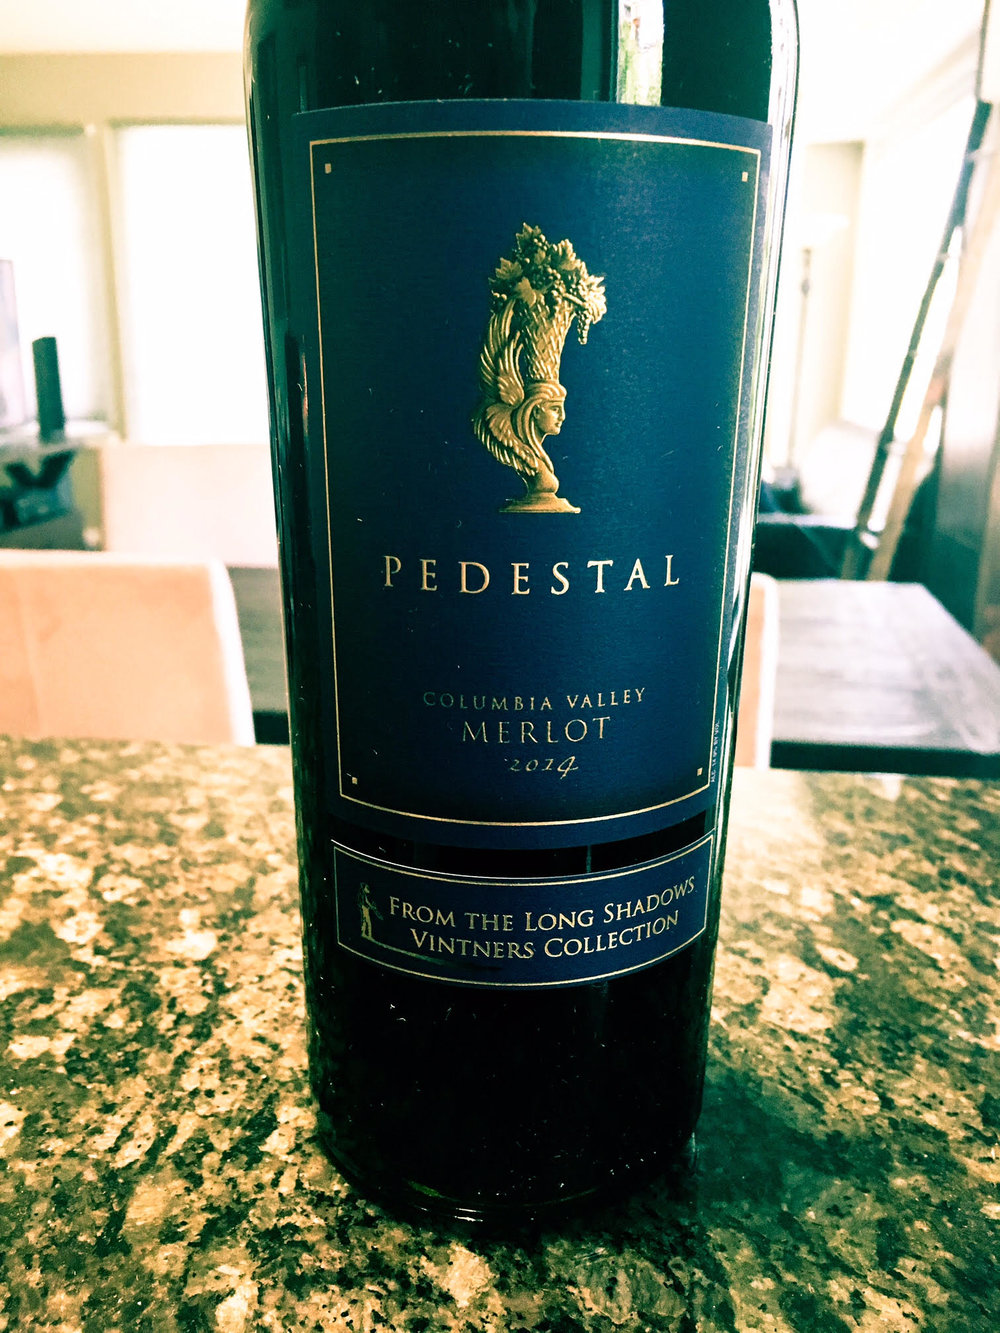 The 2014 Long Shadows 'Pedestal' Merlot (WWB, 94) was a scintillating new release. The new lineup from Long Shadows shouldn't be missed!